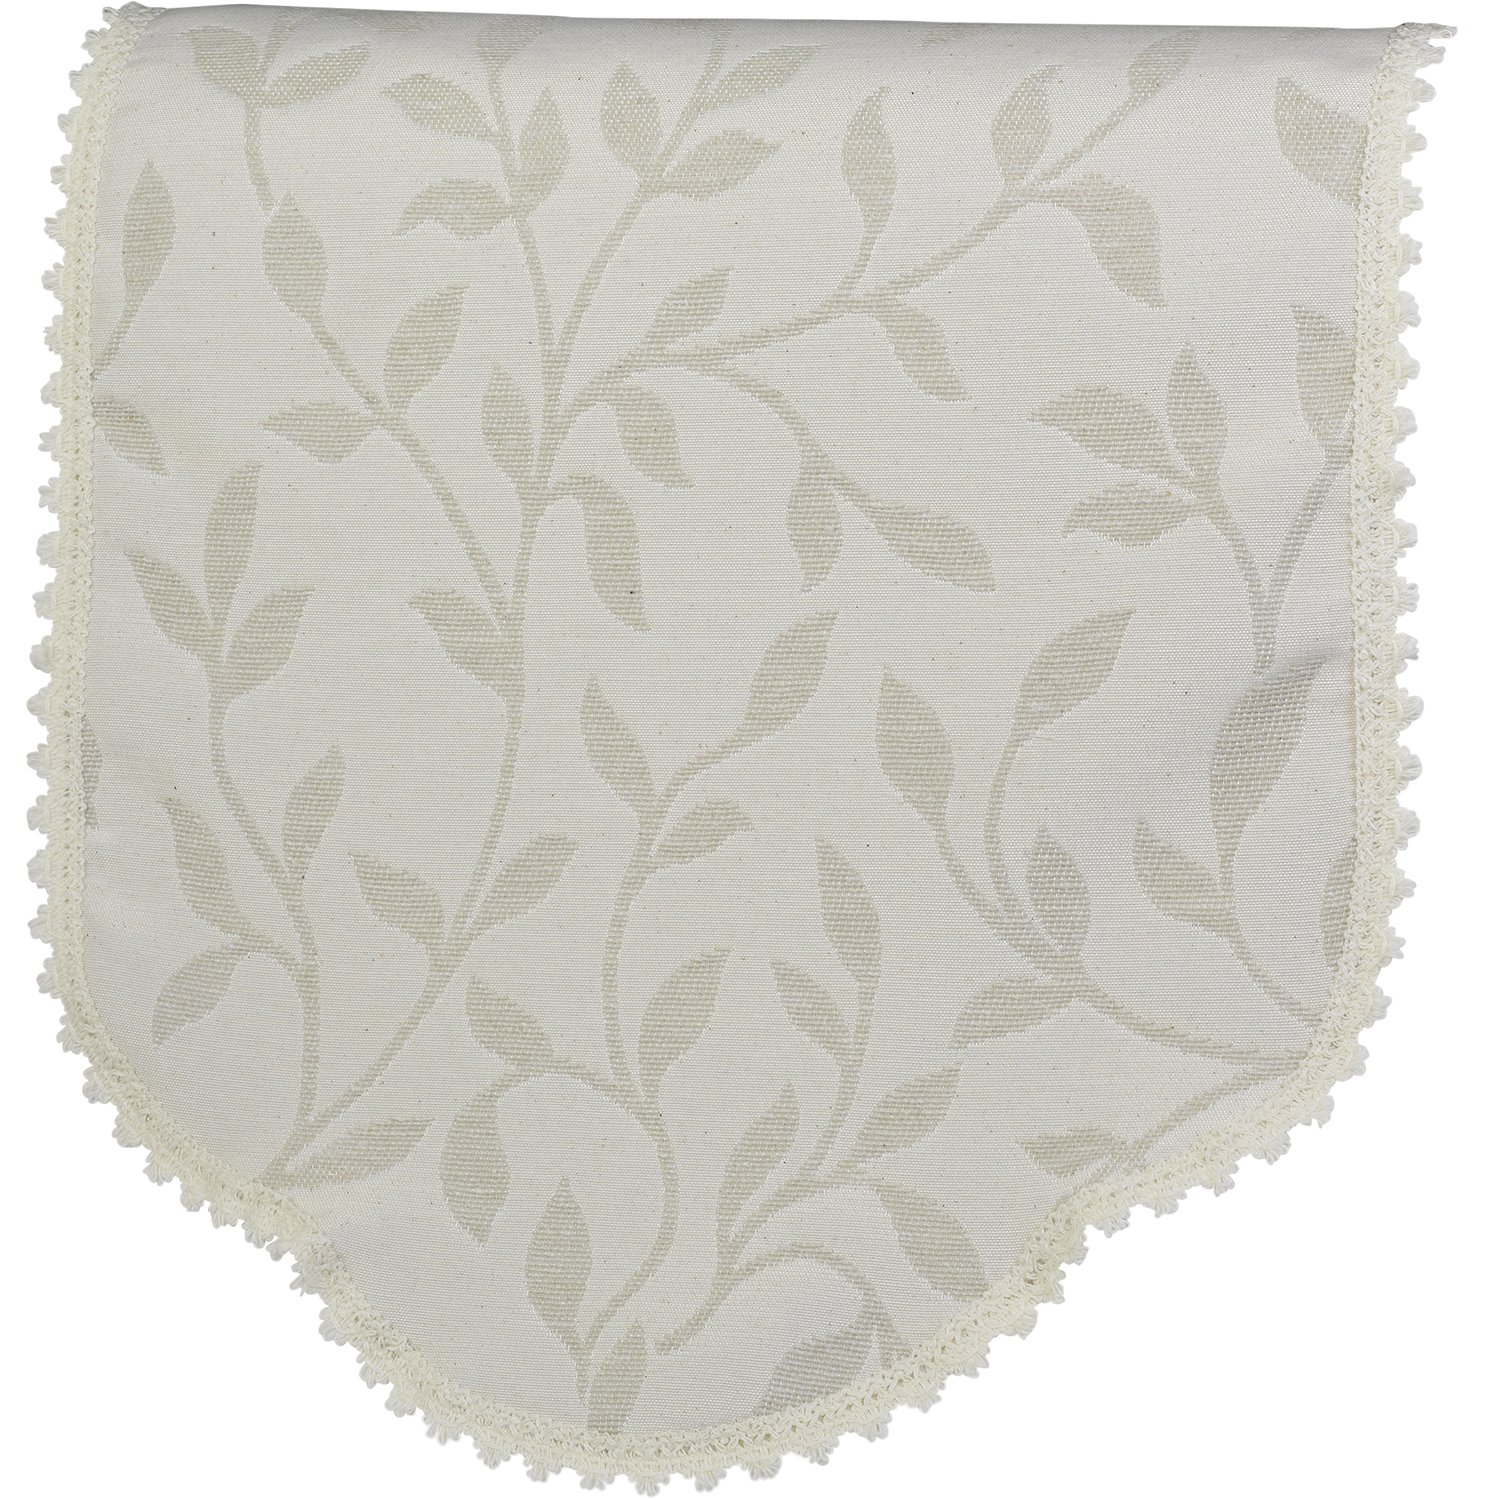 Decorative Pair of Jumbo Round Arm Caps Floral Leaf Pattern Furniture Cover (Cream) Classic Home Store